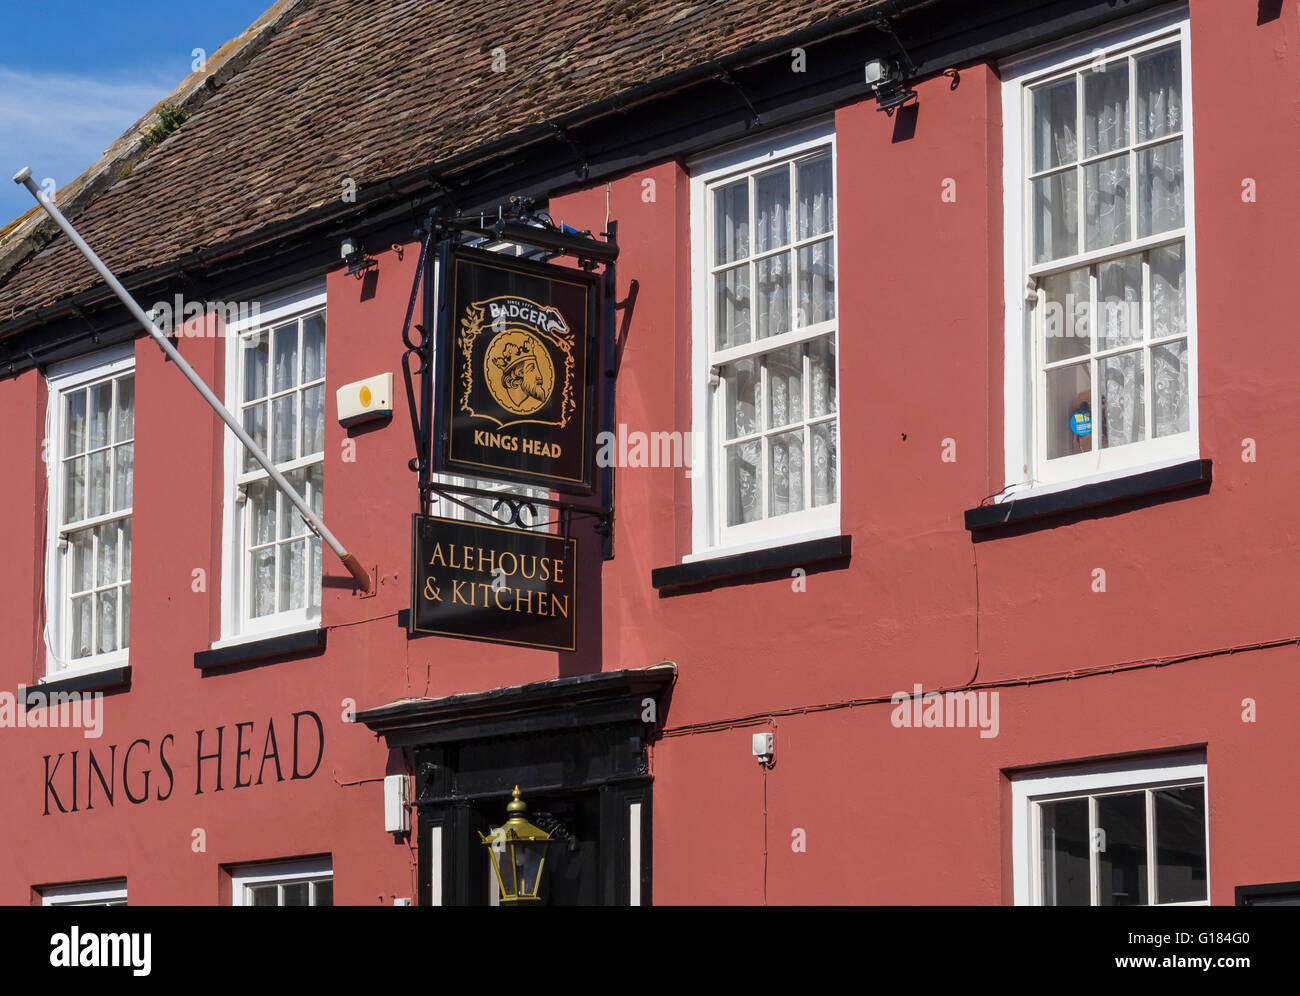 The Kings Head Public House, Poole, Dorset, UK. - Stock Image